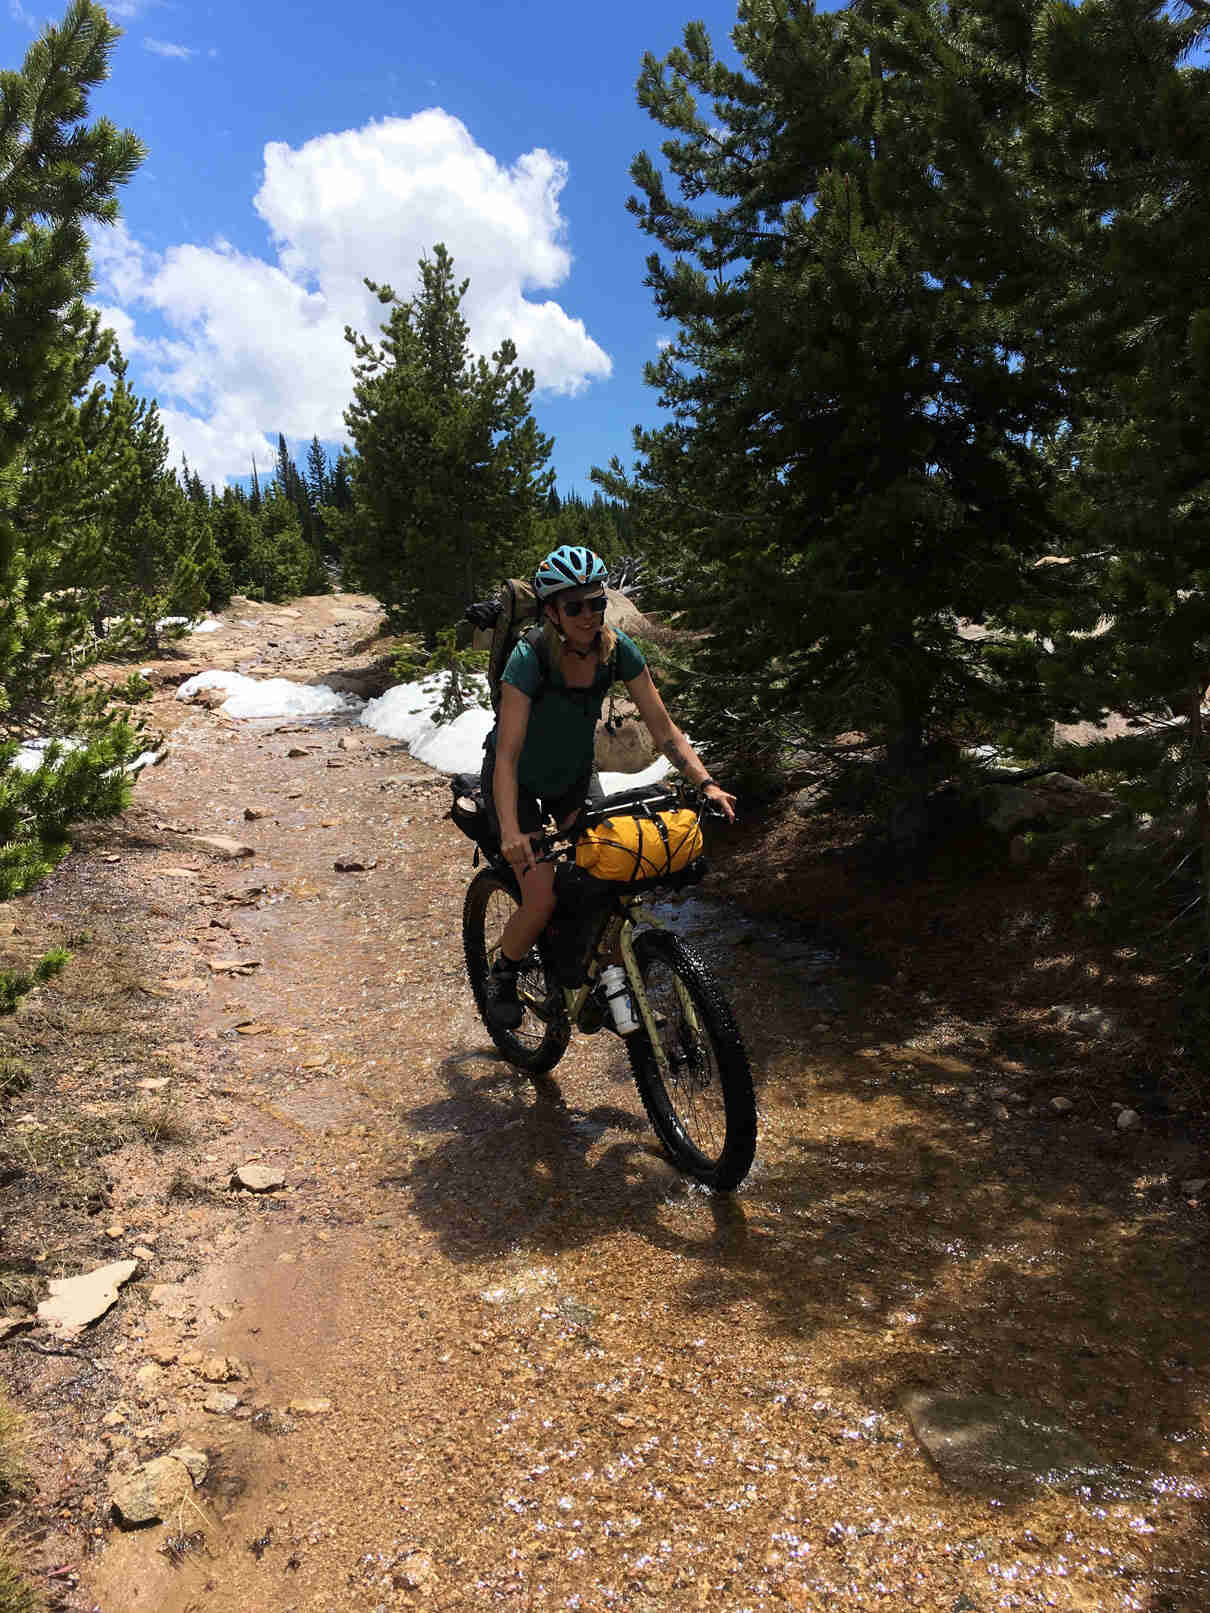 Front view of a cyclist riding a Surly ECR bike up a rocky trail hill with pine trees on the side